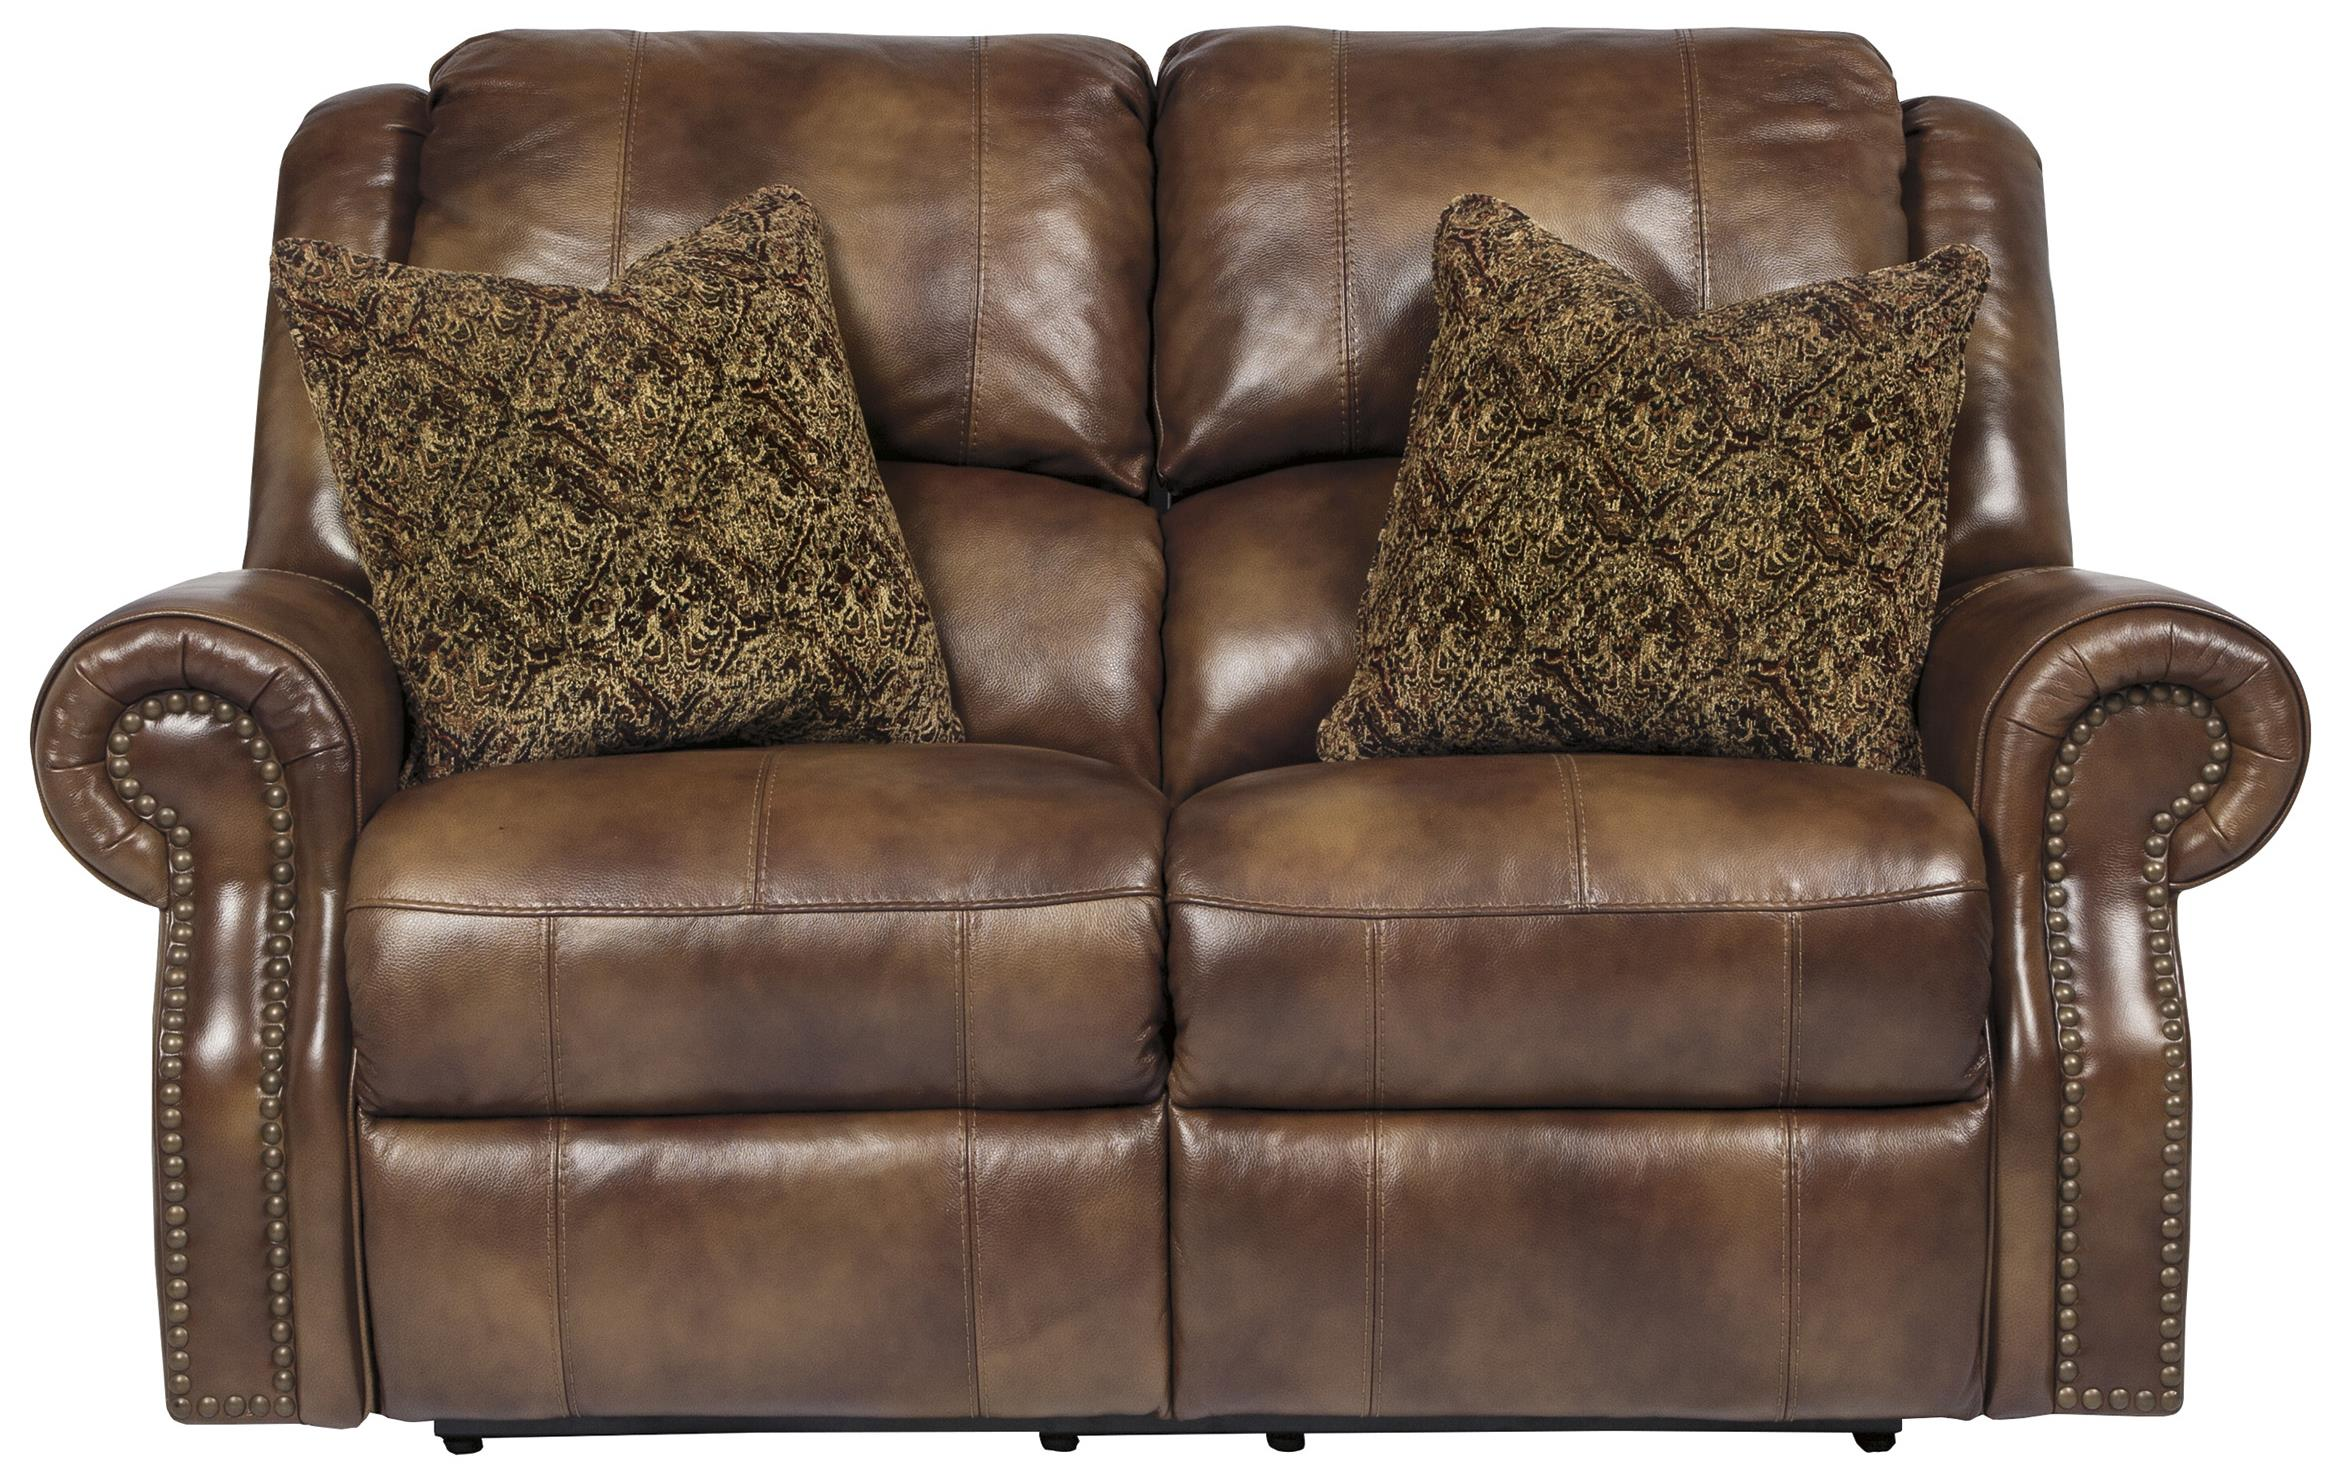 Signature Design by Ashley Walworth Reclining Power Loveseat - Item Number: U7800174